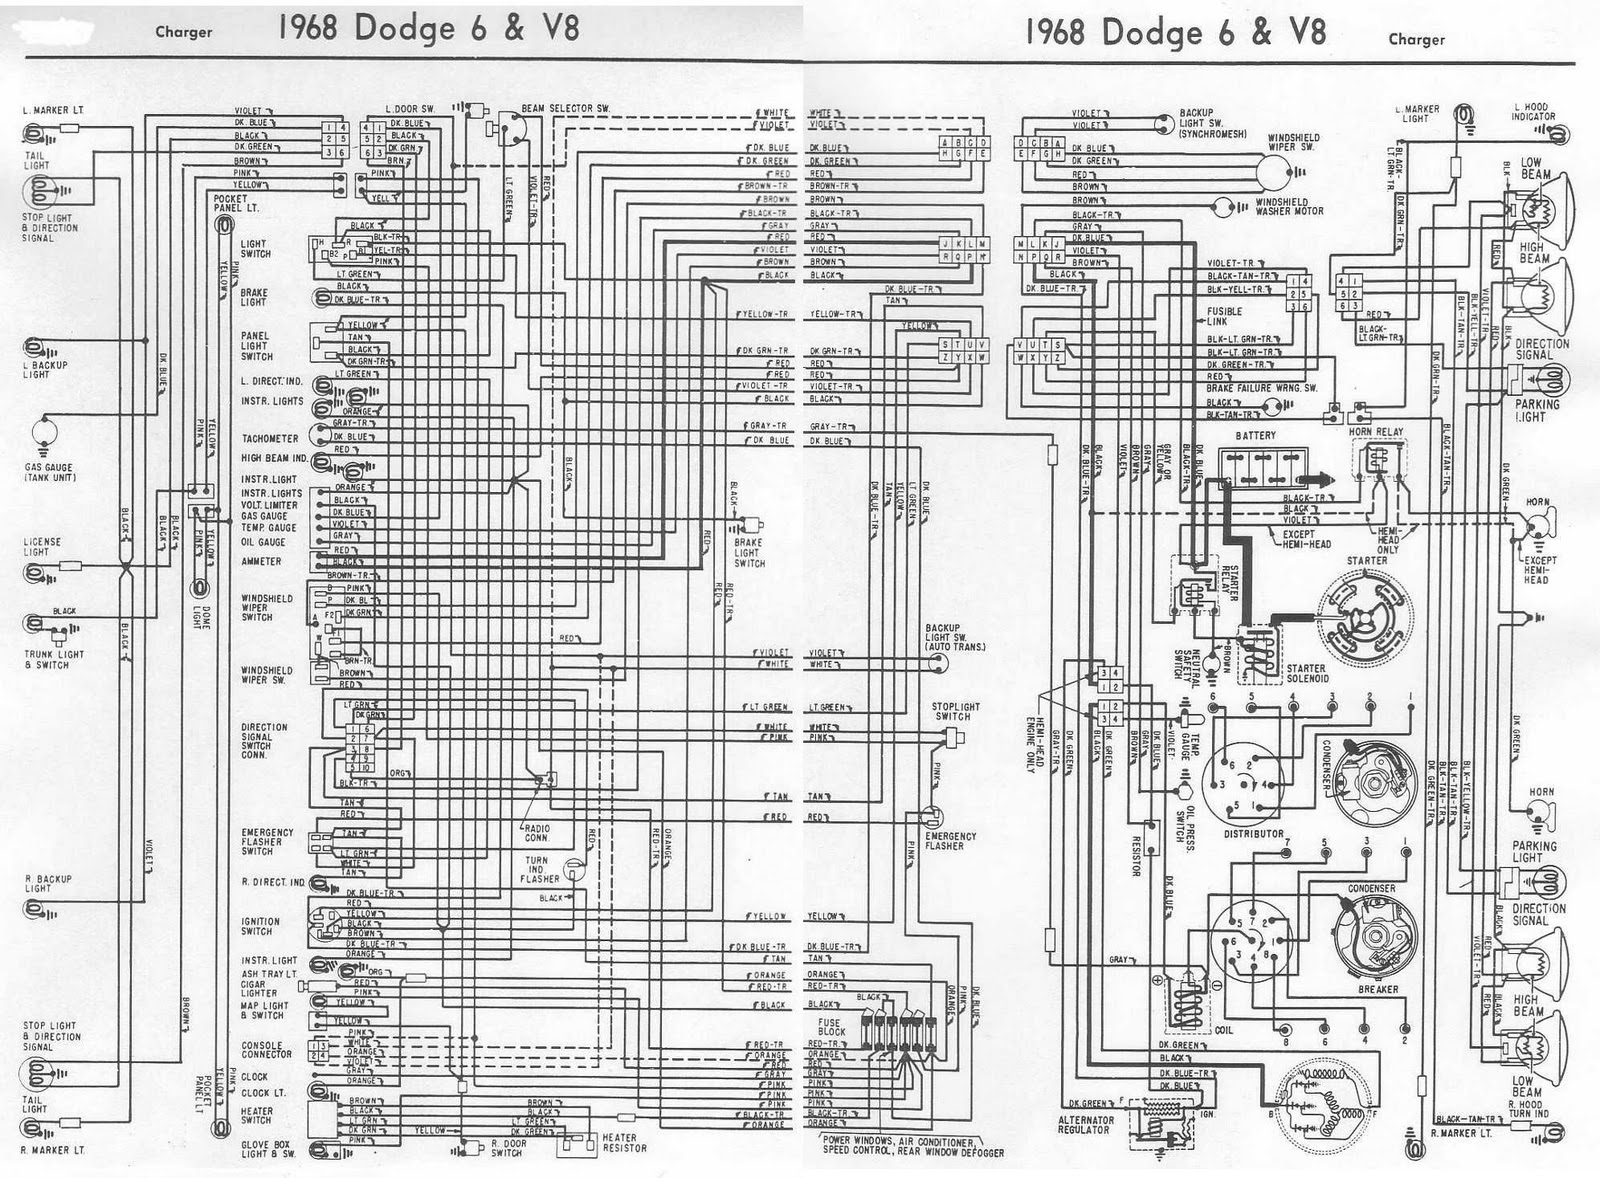 1954 Dodge Wiring Diagram Library Tomos A3 1949 Coronet Club Coupe 1950